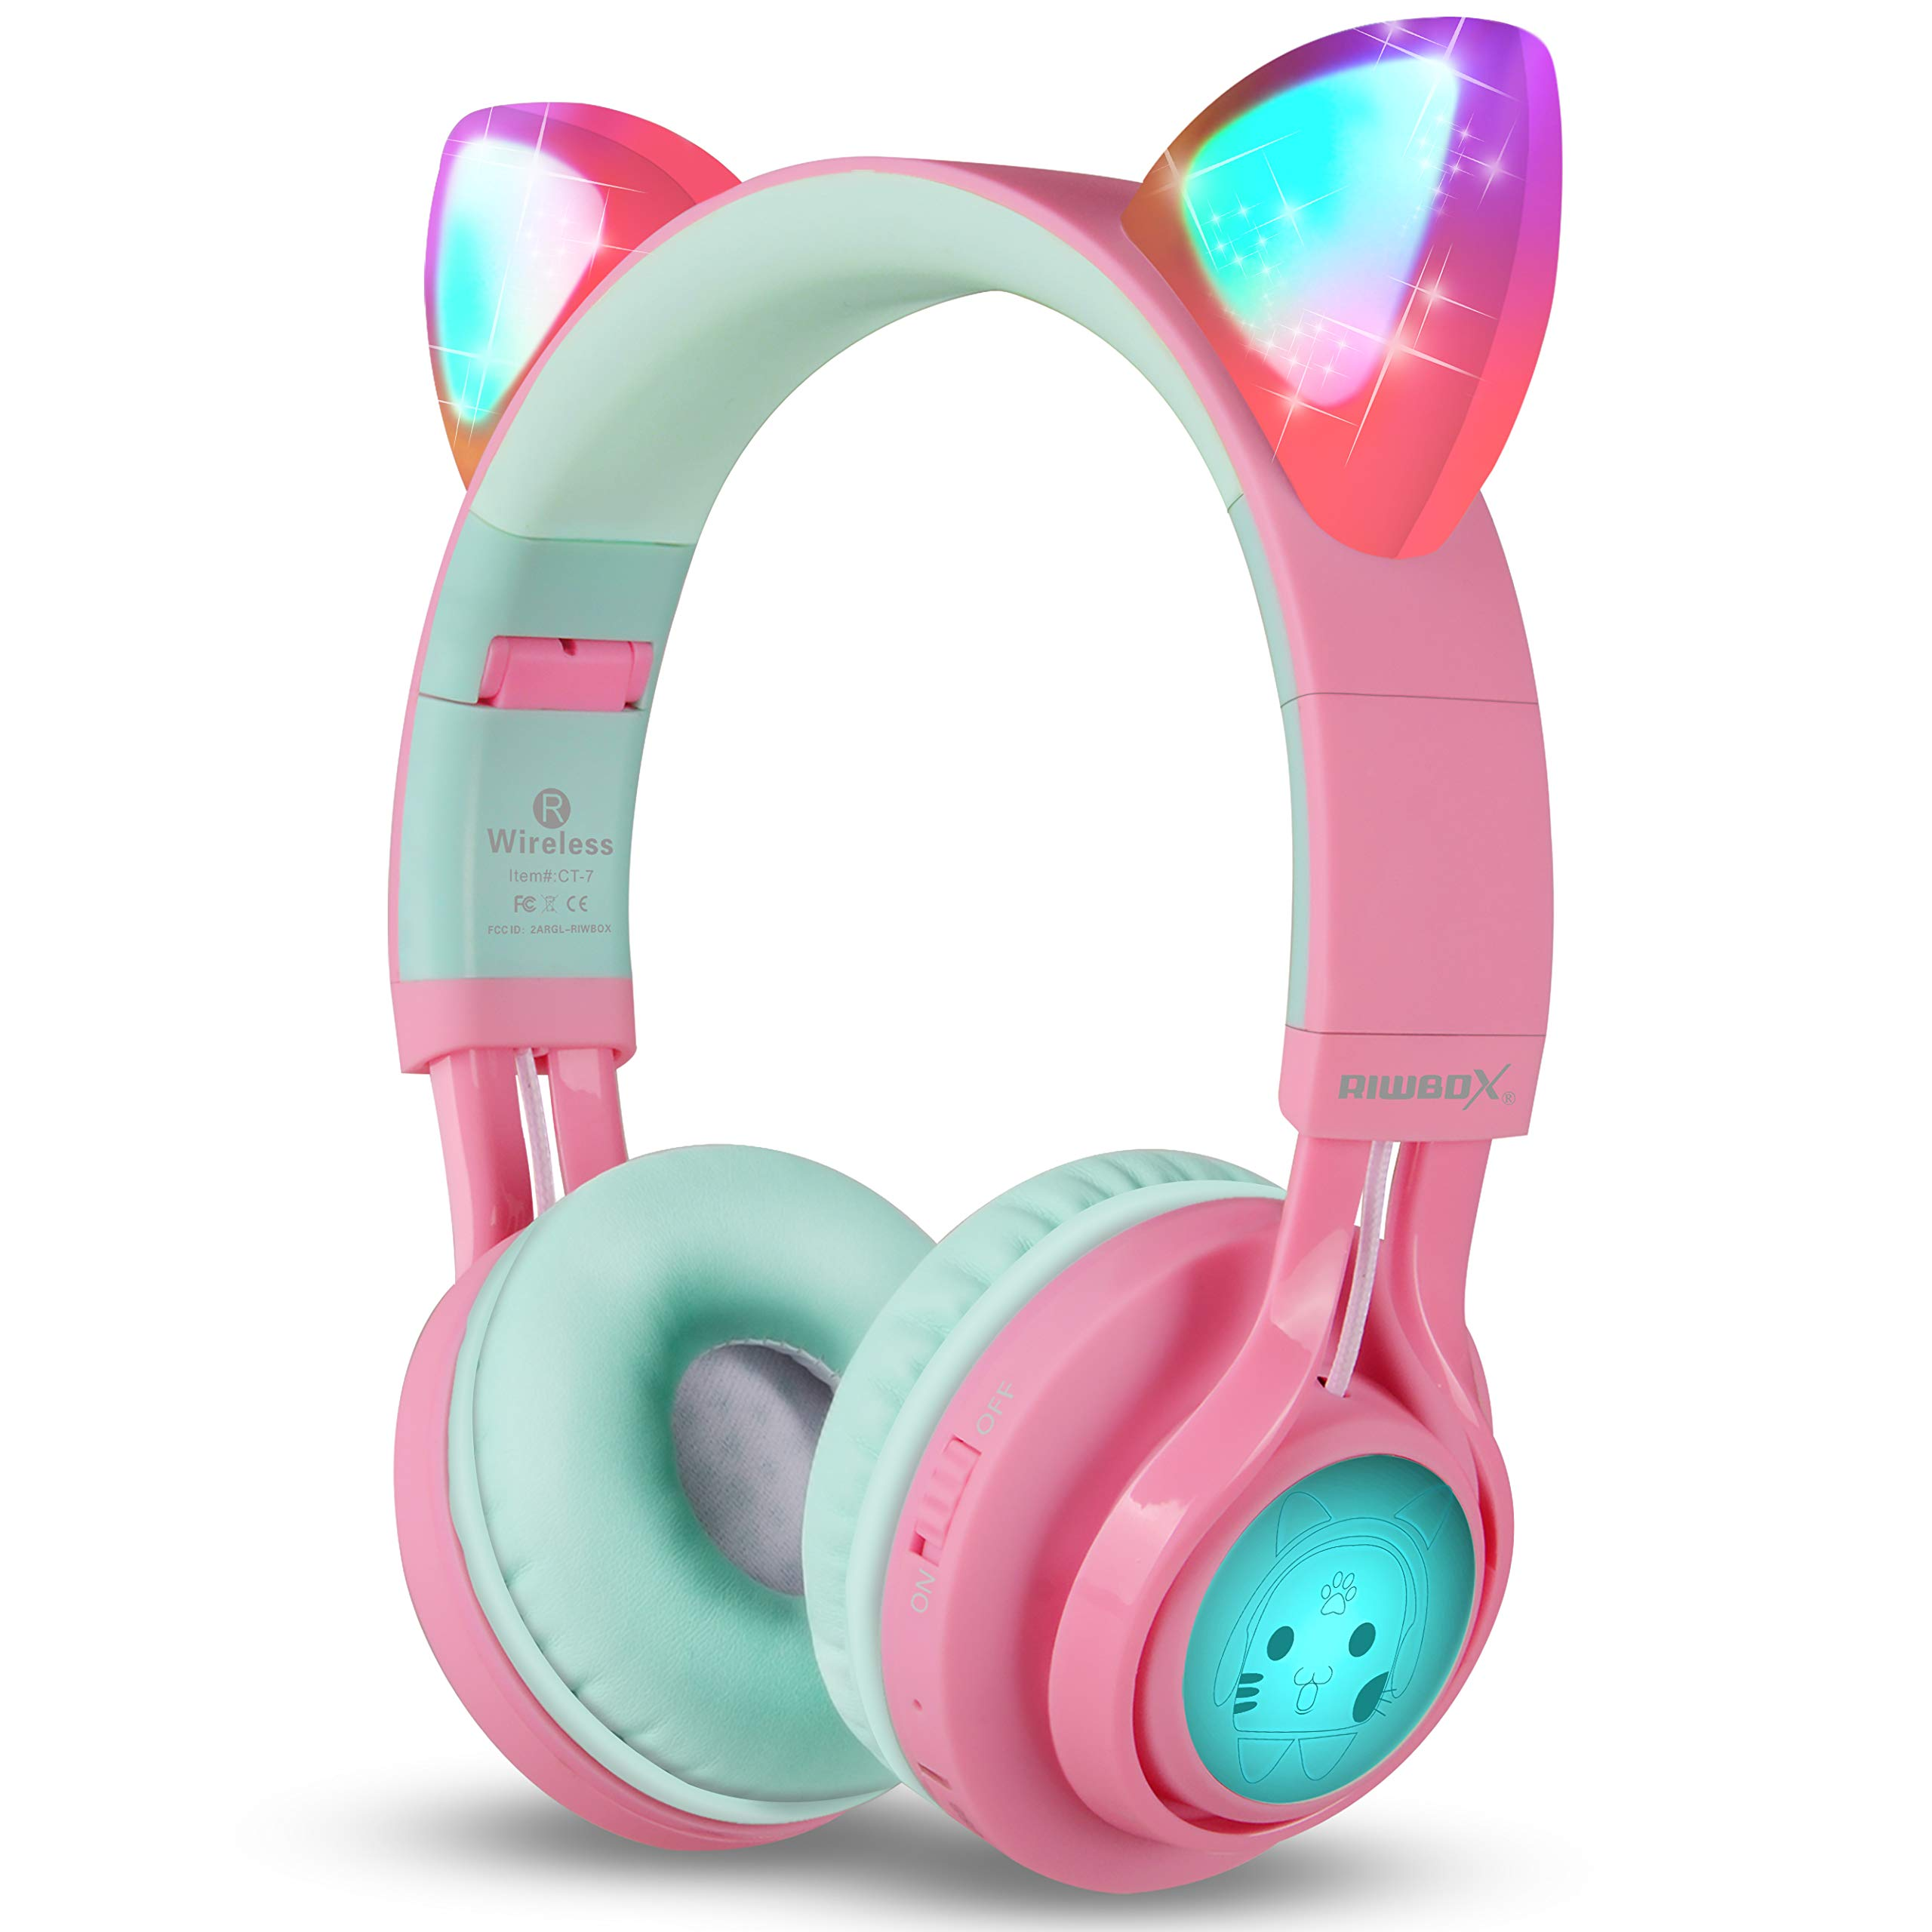 Riwbox Bluetooth Headphones, Riwbox CT-7 Cat Ear LED Light Up Wireless Foldable Headphones Over Ear with Microphone and Volume Control for iPhone/iPad/Smartphones/Laptop/PC/TV (Pink&Green) by Riwbox